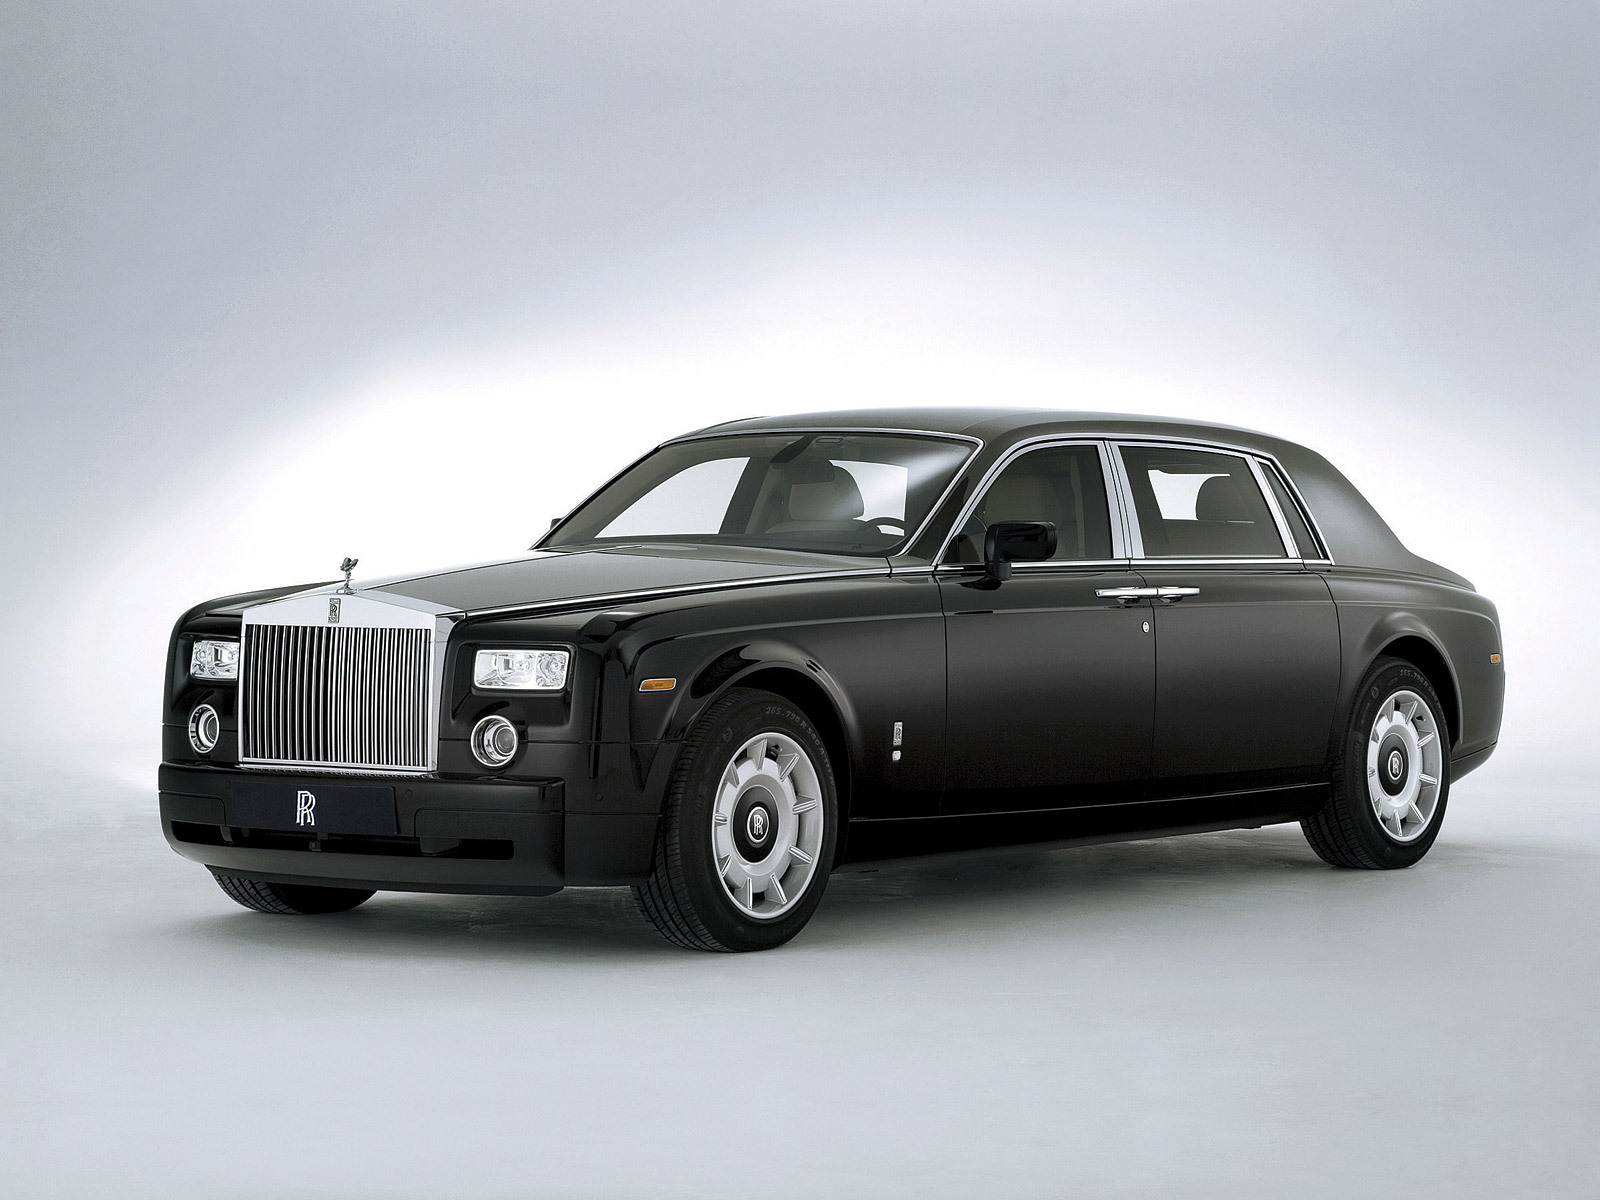 Rolls royce phanthom photo - 9